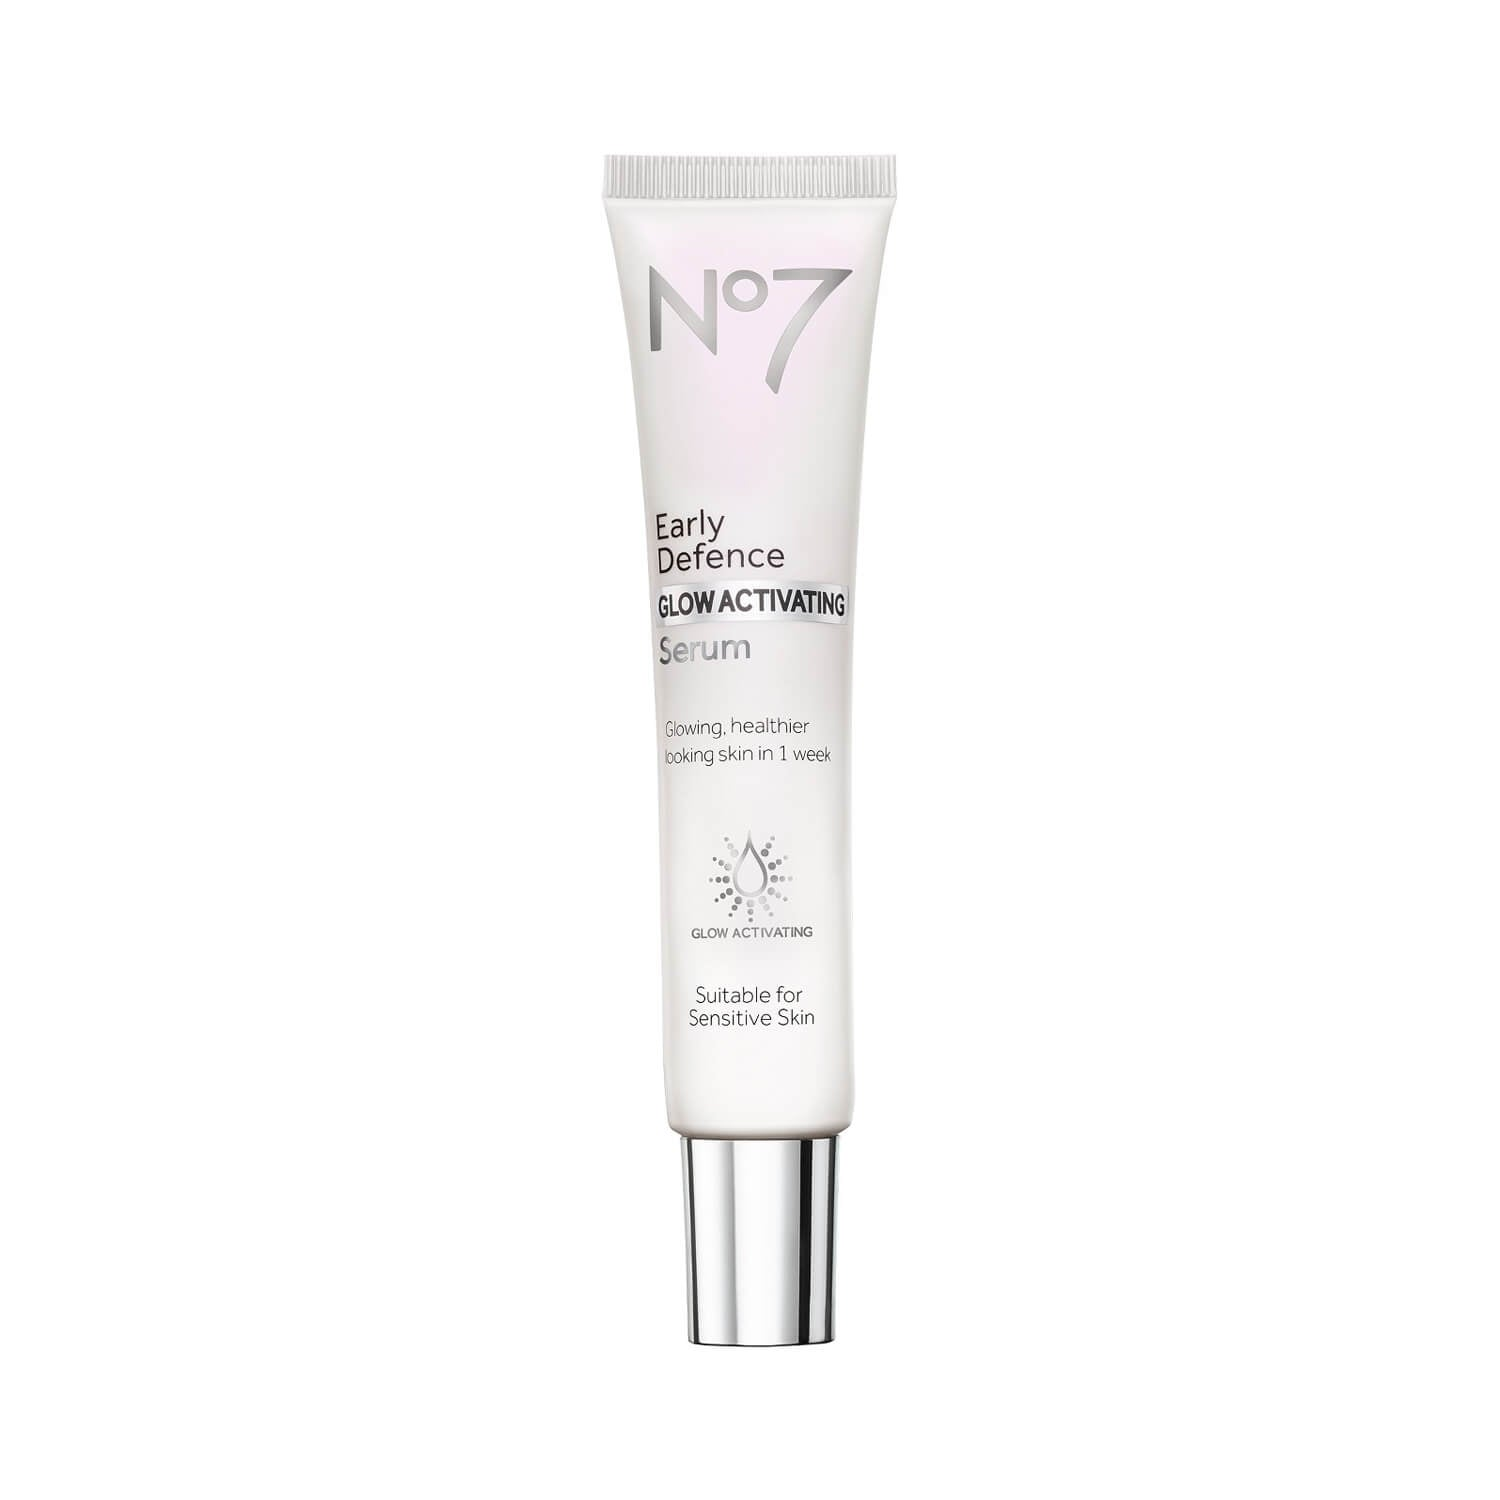 Buy No7 Skincare, Anti Ageing Beauty Products In Australia